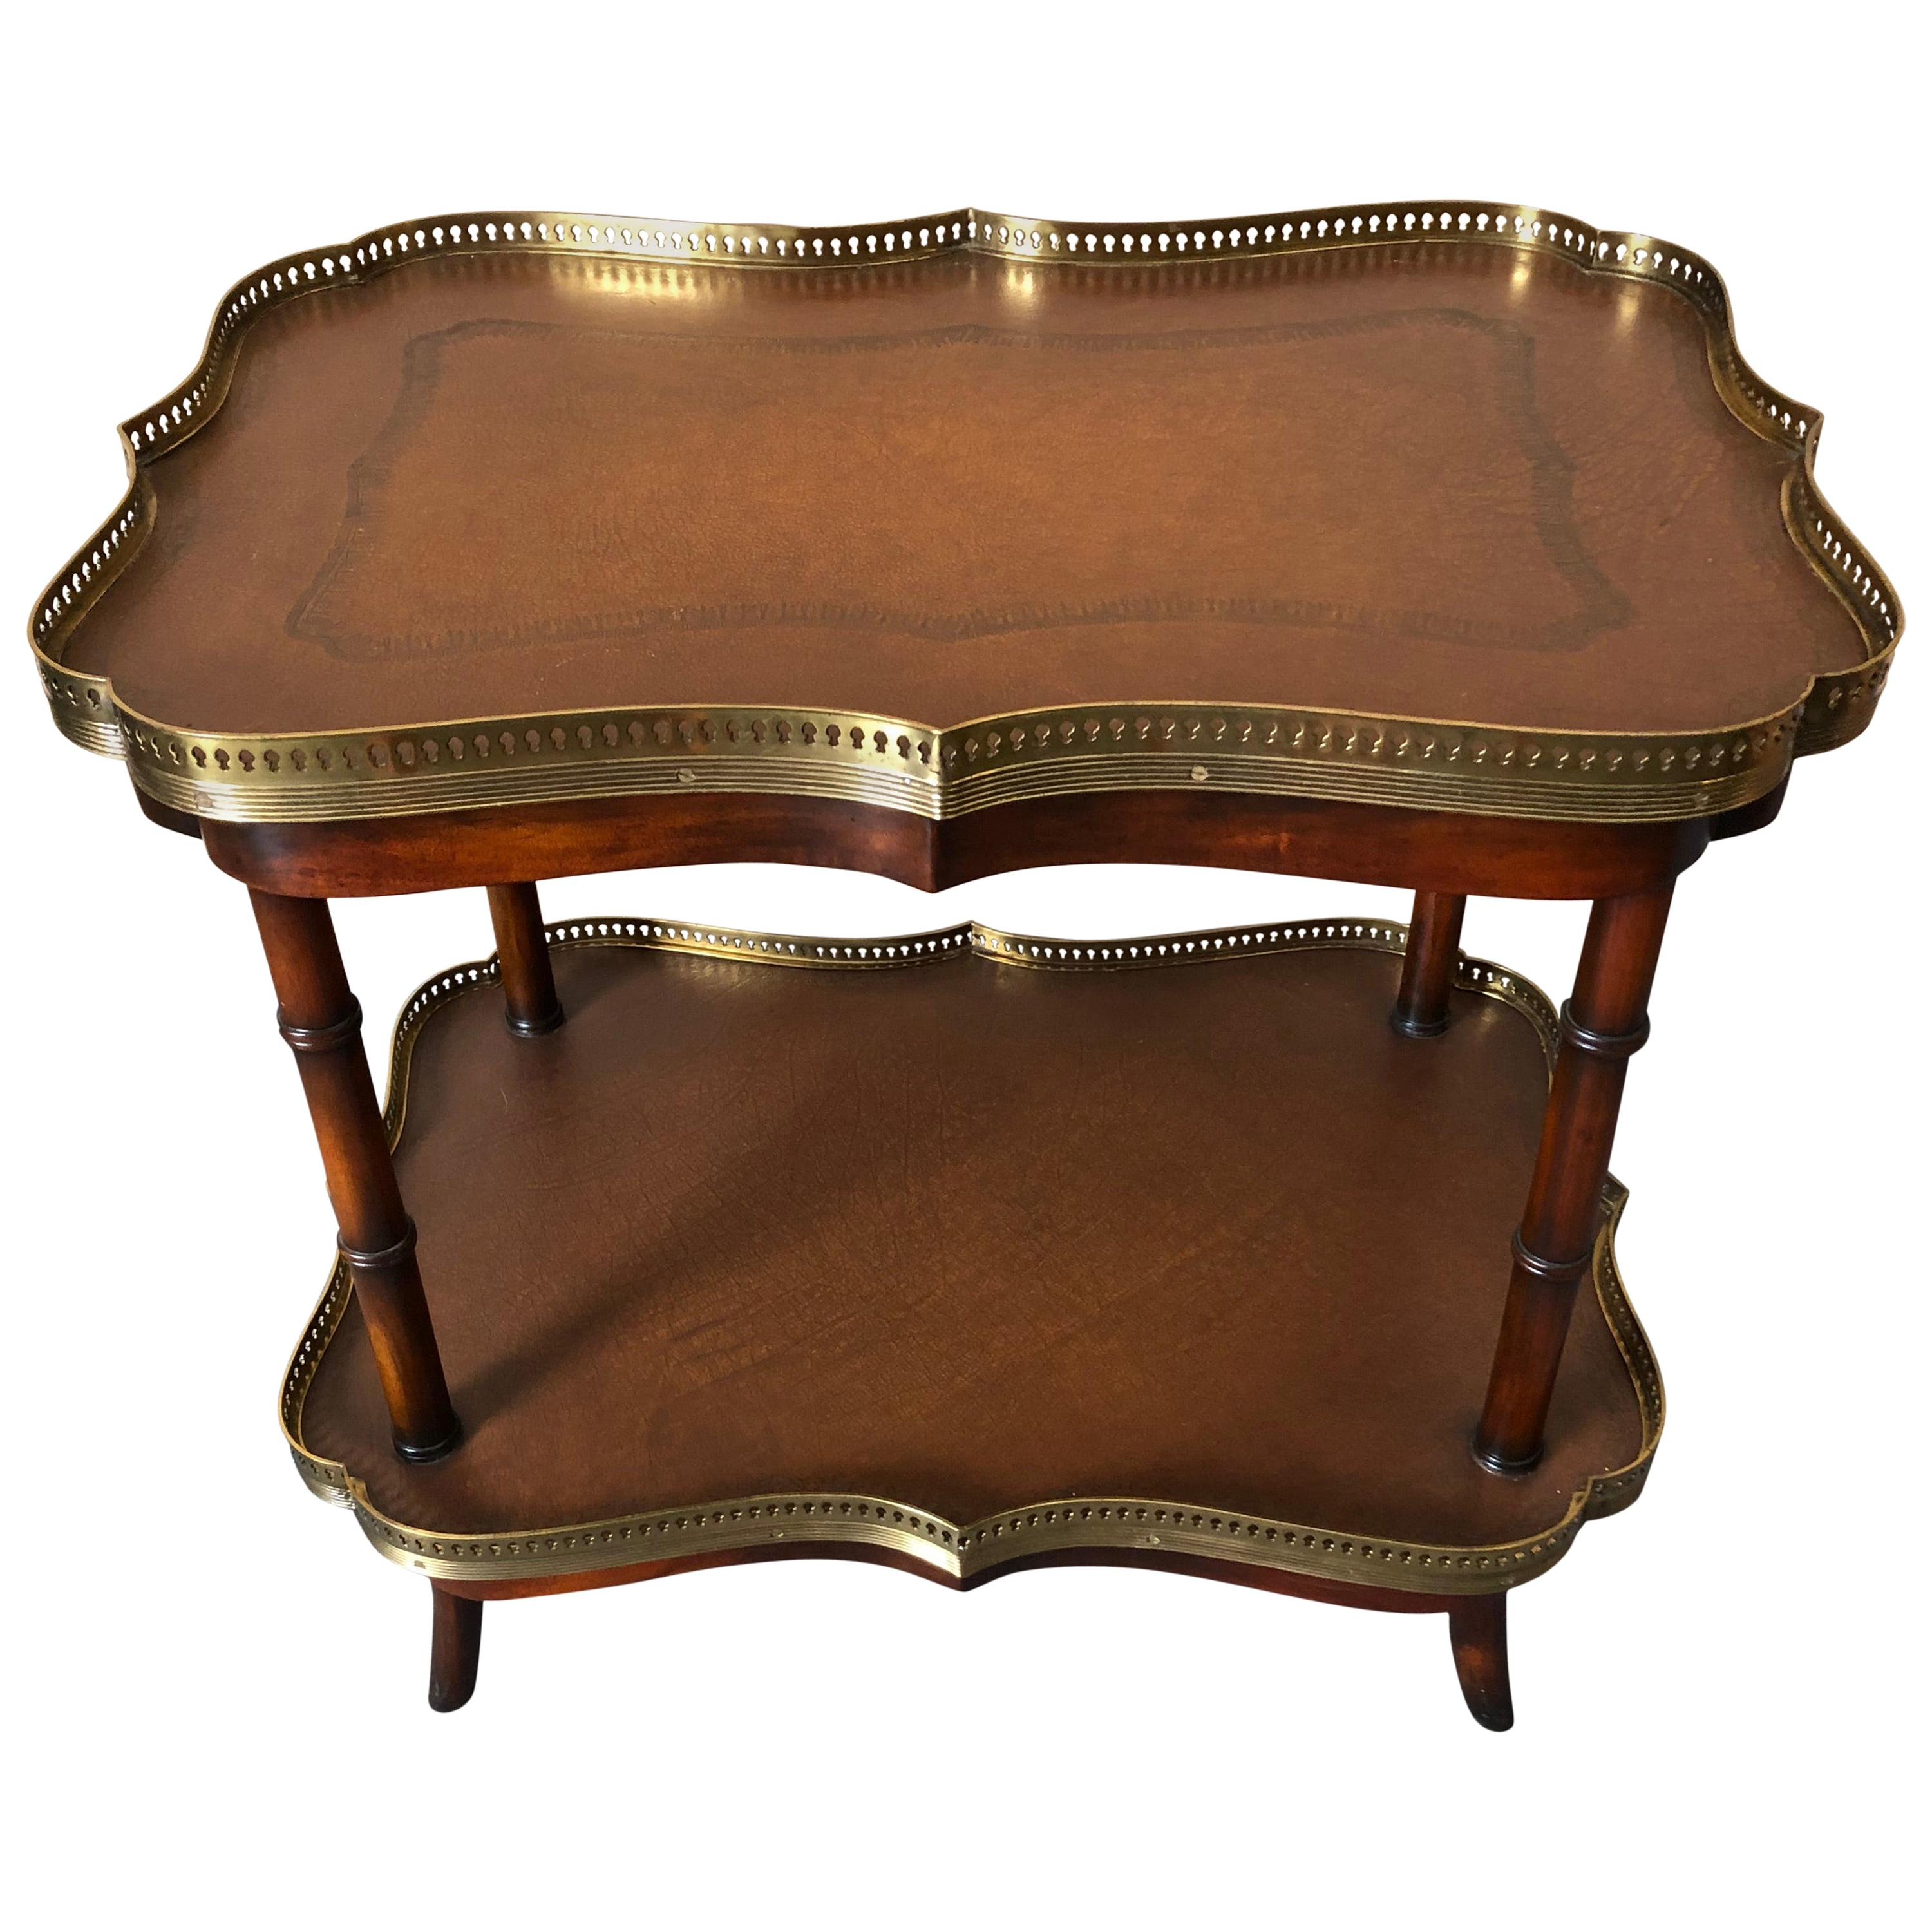 Handsome Two-Tier Leather and Wood Side Table or Bar Cart by Theodore Alexander